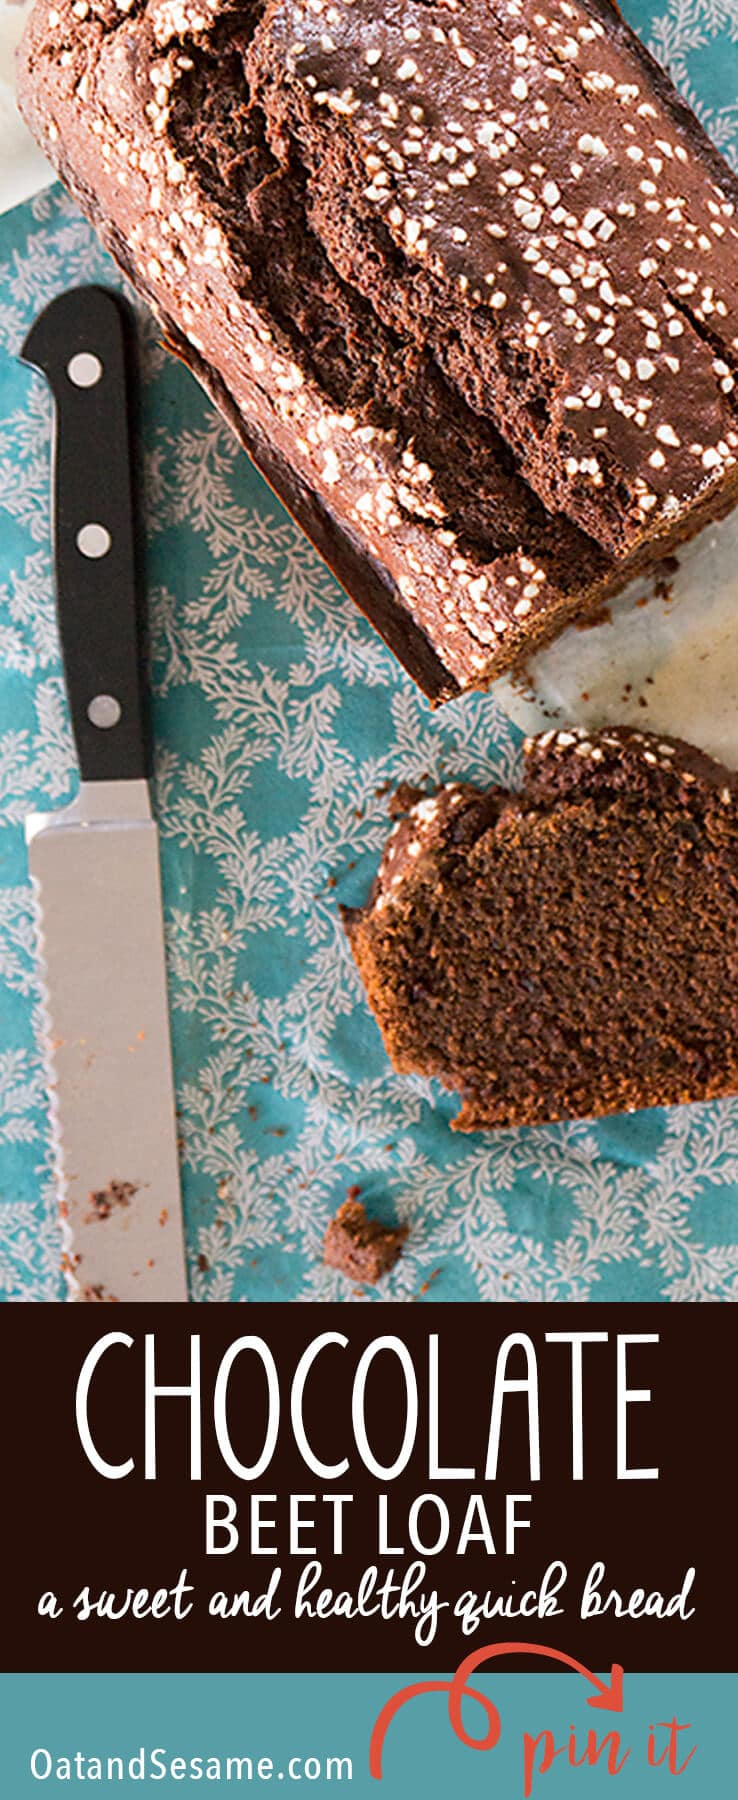 Chocolate Beet Loaf! It's surprising how delicious beets are in baked goods - so most and undetectable - similar to using applesauce! This beet loaf had my neighbors kids fooled into eating some veggies!   #BEETS   #BAKING   #CHOCOLATE   #BREAD   #Recipes at OatandSesame.com